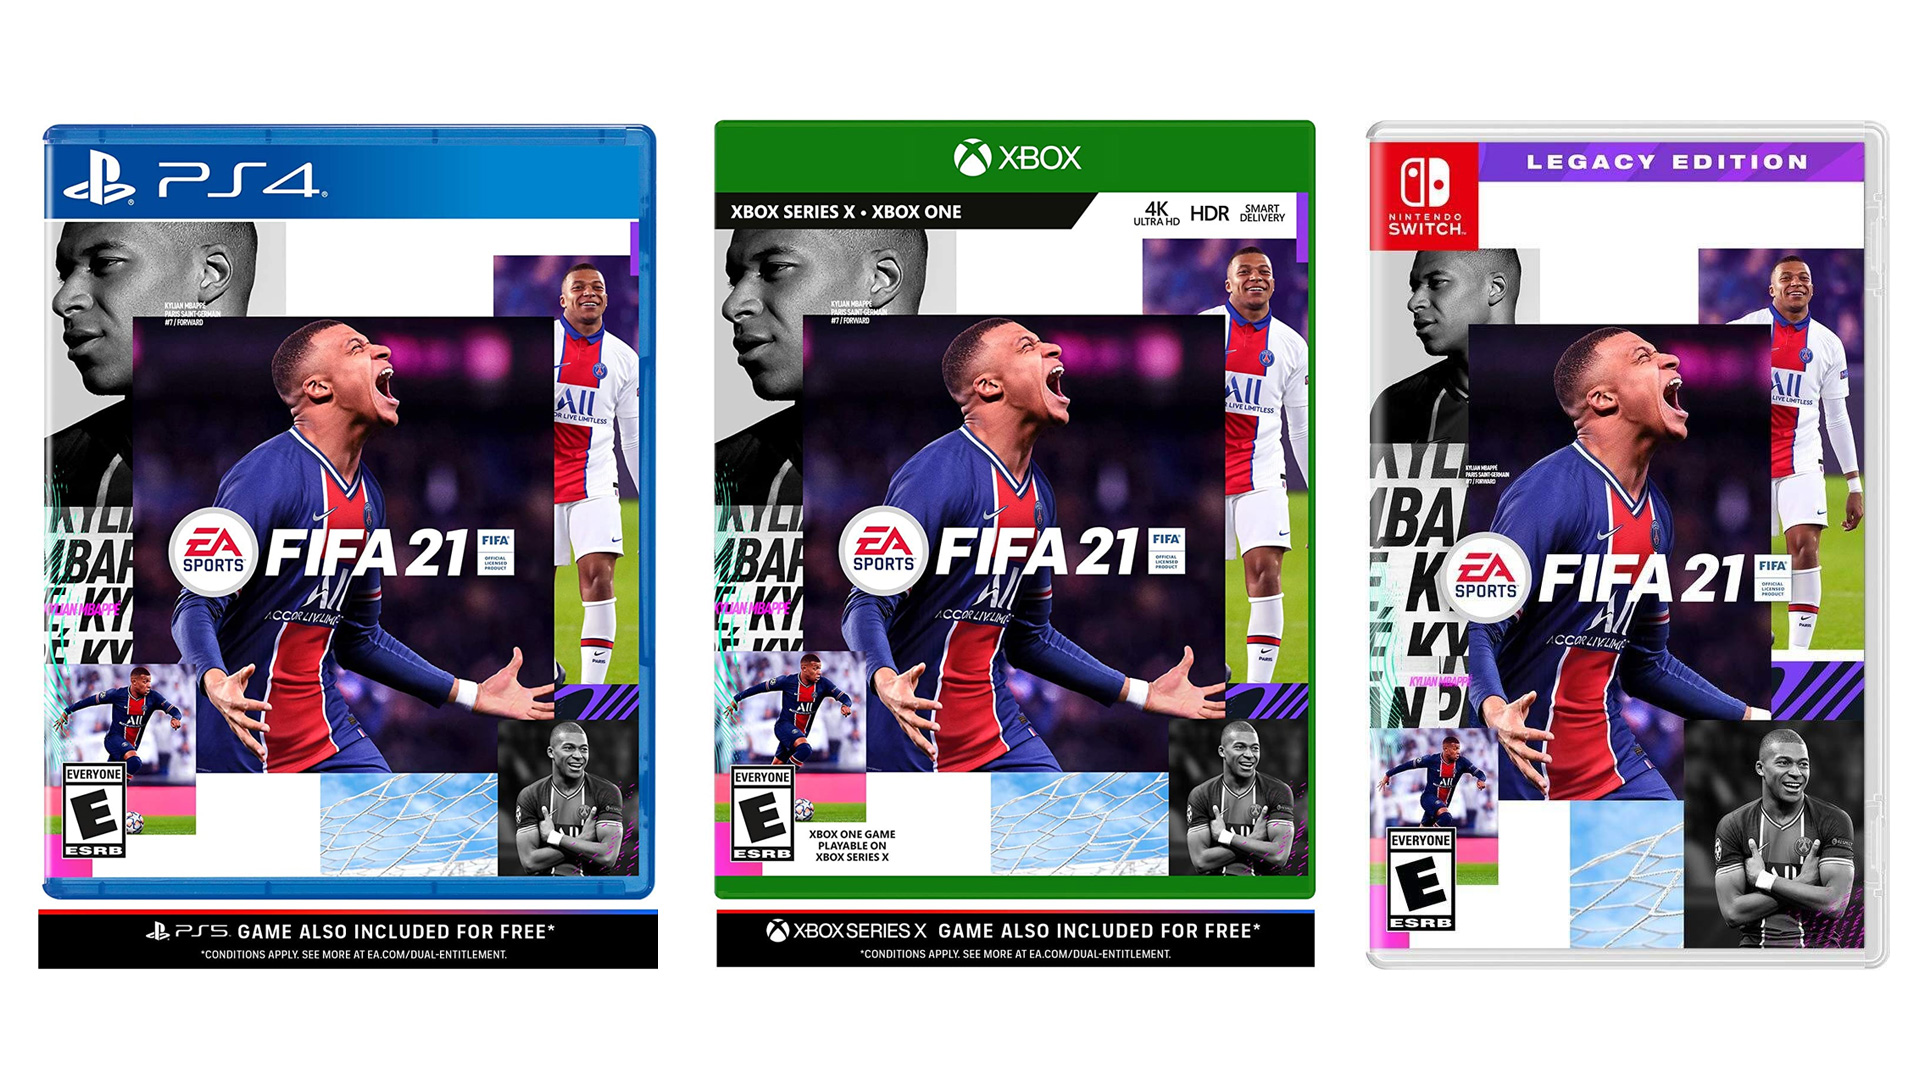 FIFA 21 פיפא 21 עותק פיזי – Ps4 / XBOX ONE / Nintendo Switch